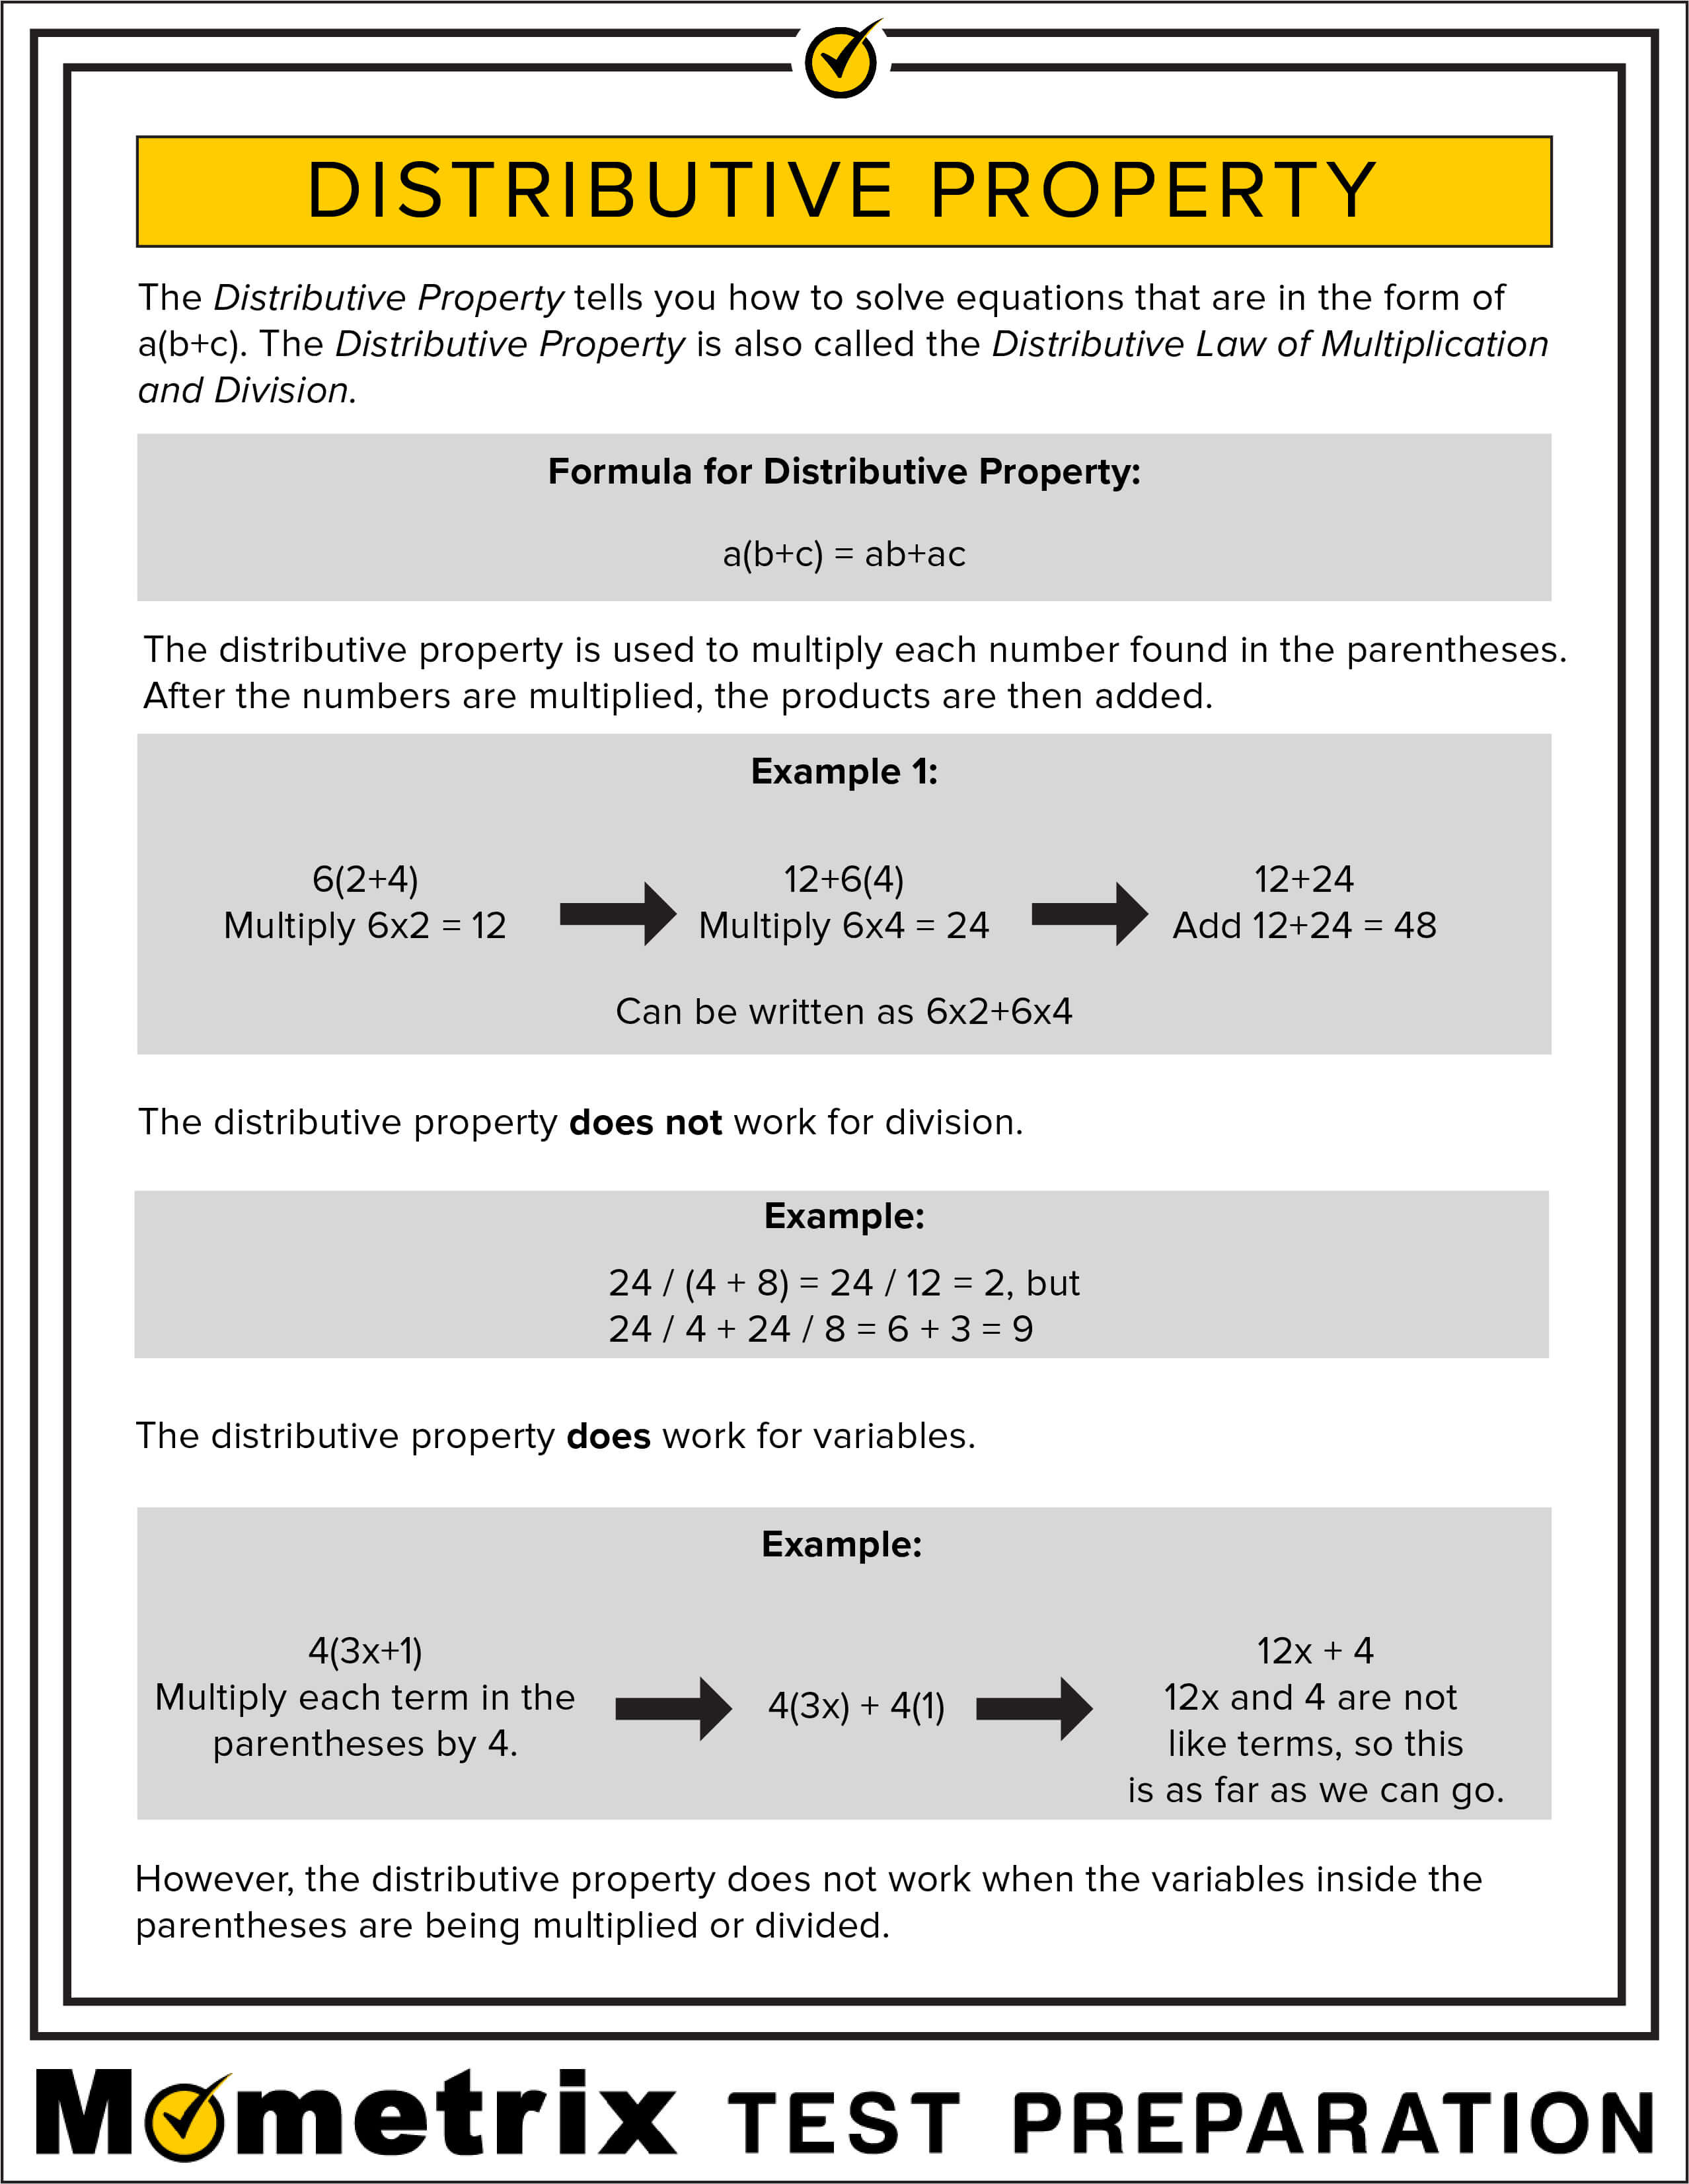 Distributive Property Fact Sheet